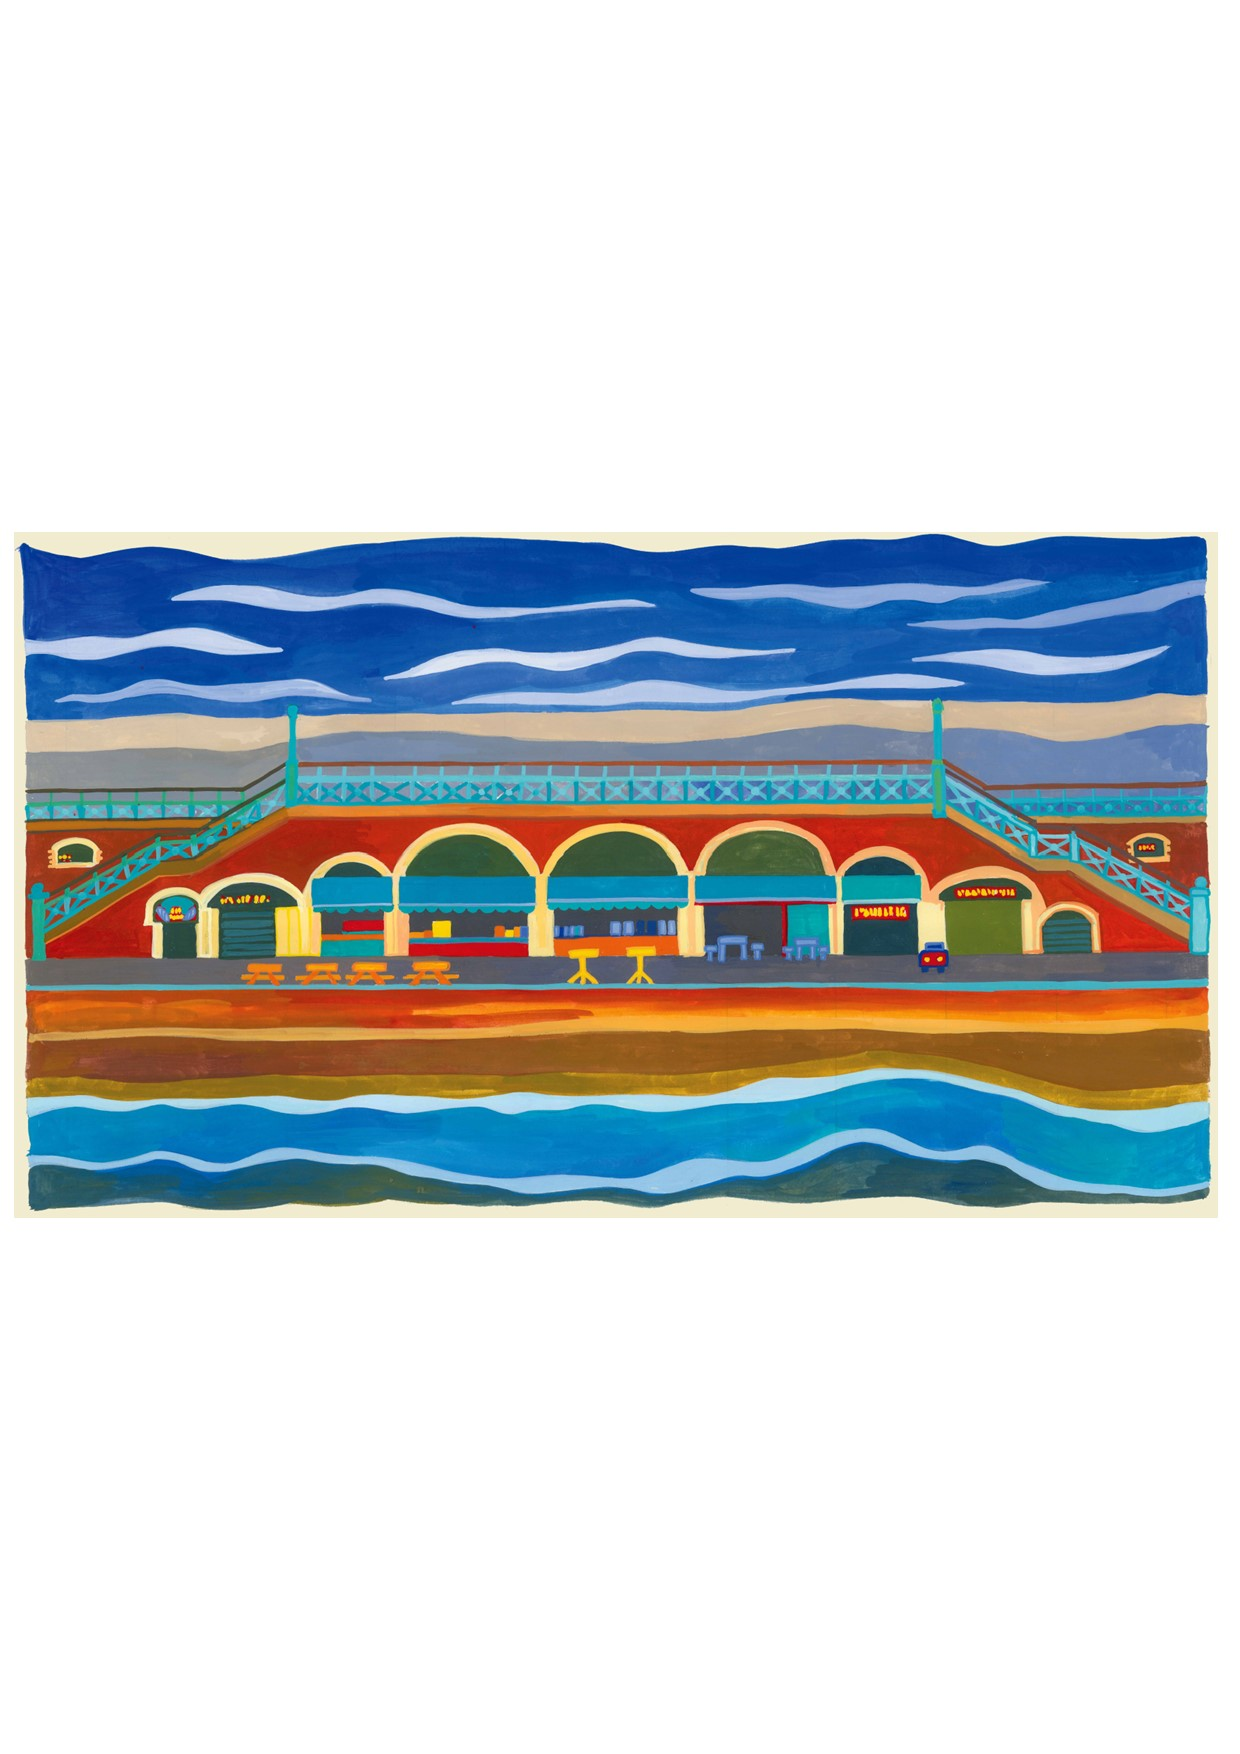 Painting of Brighton Seafront Arches